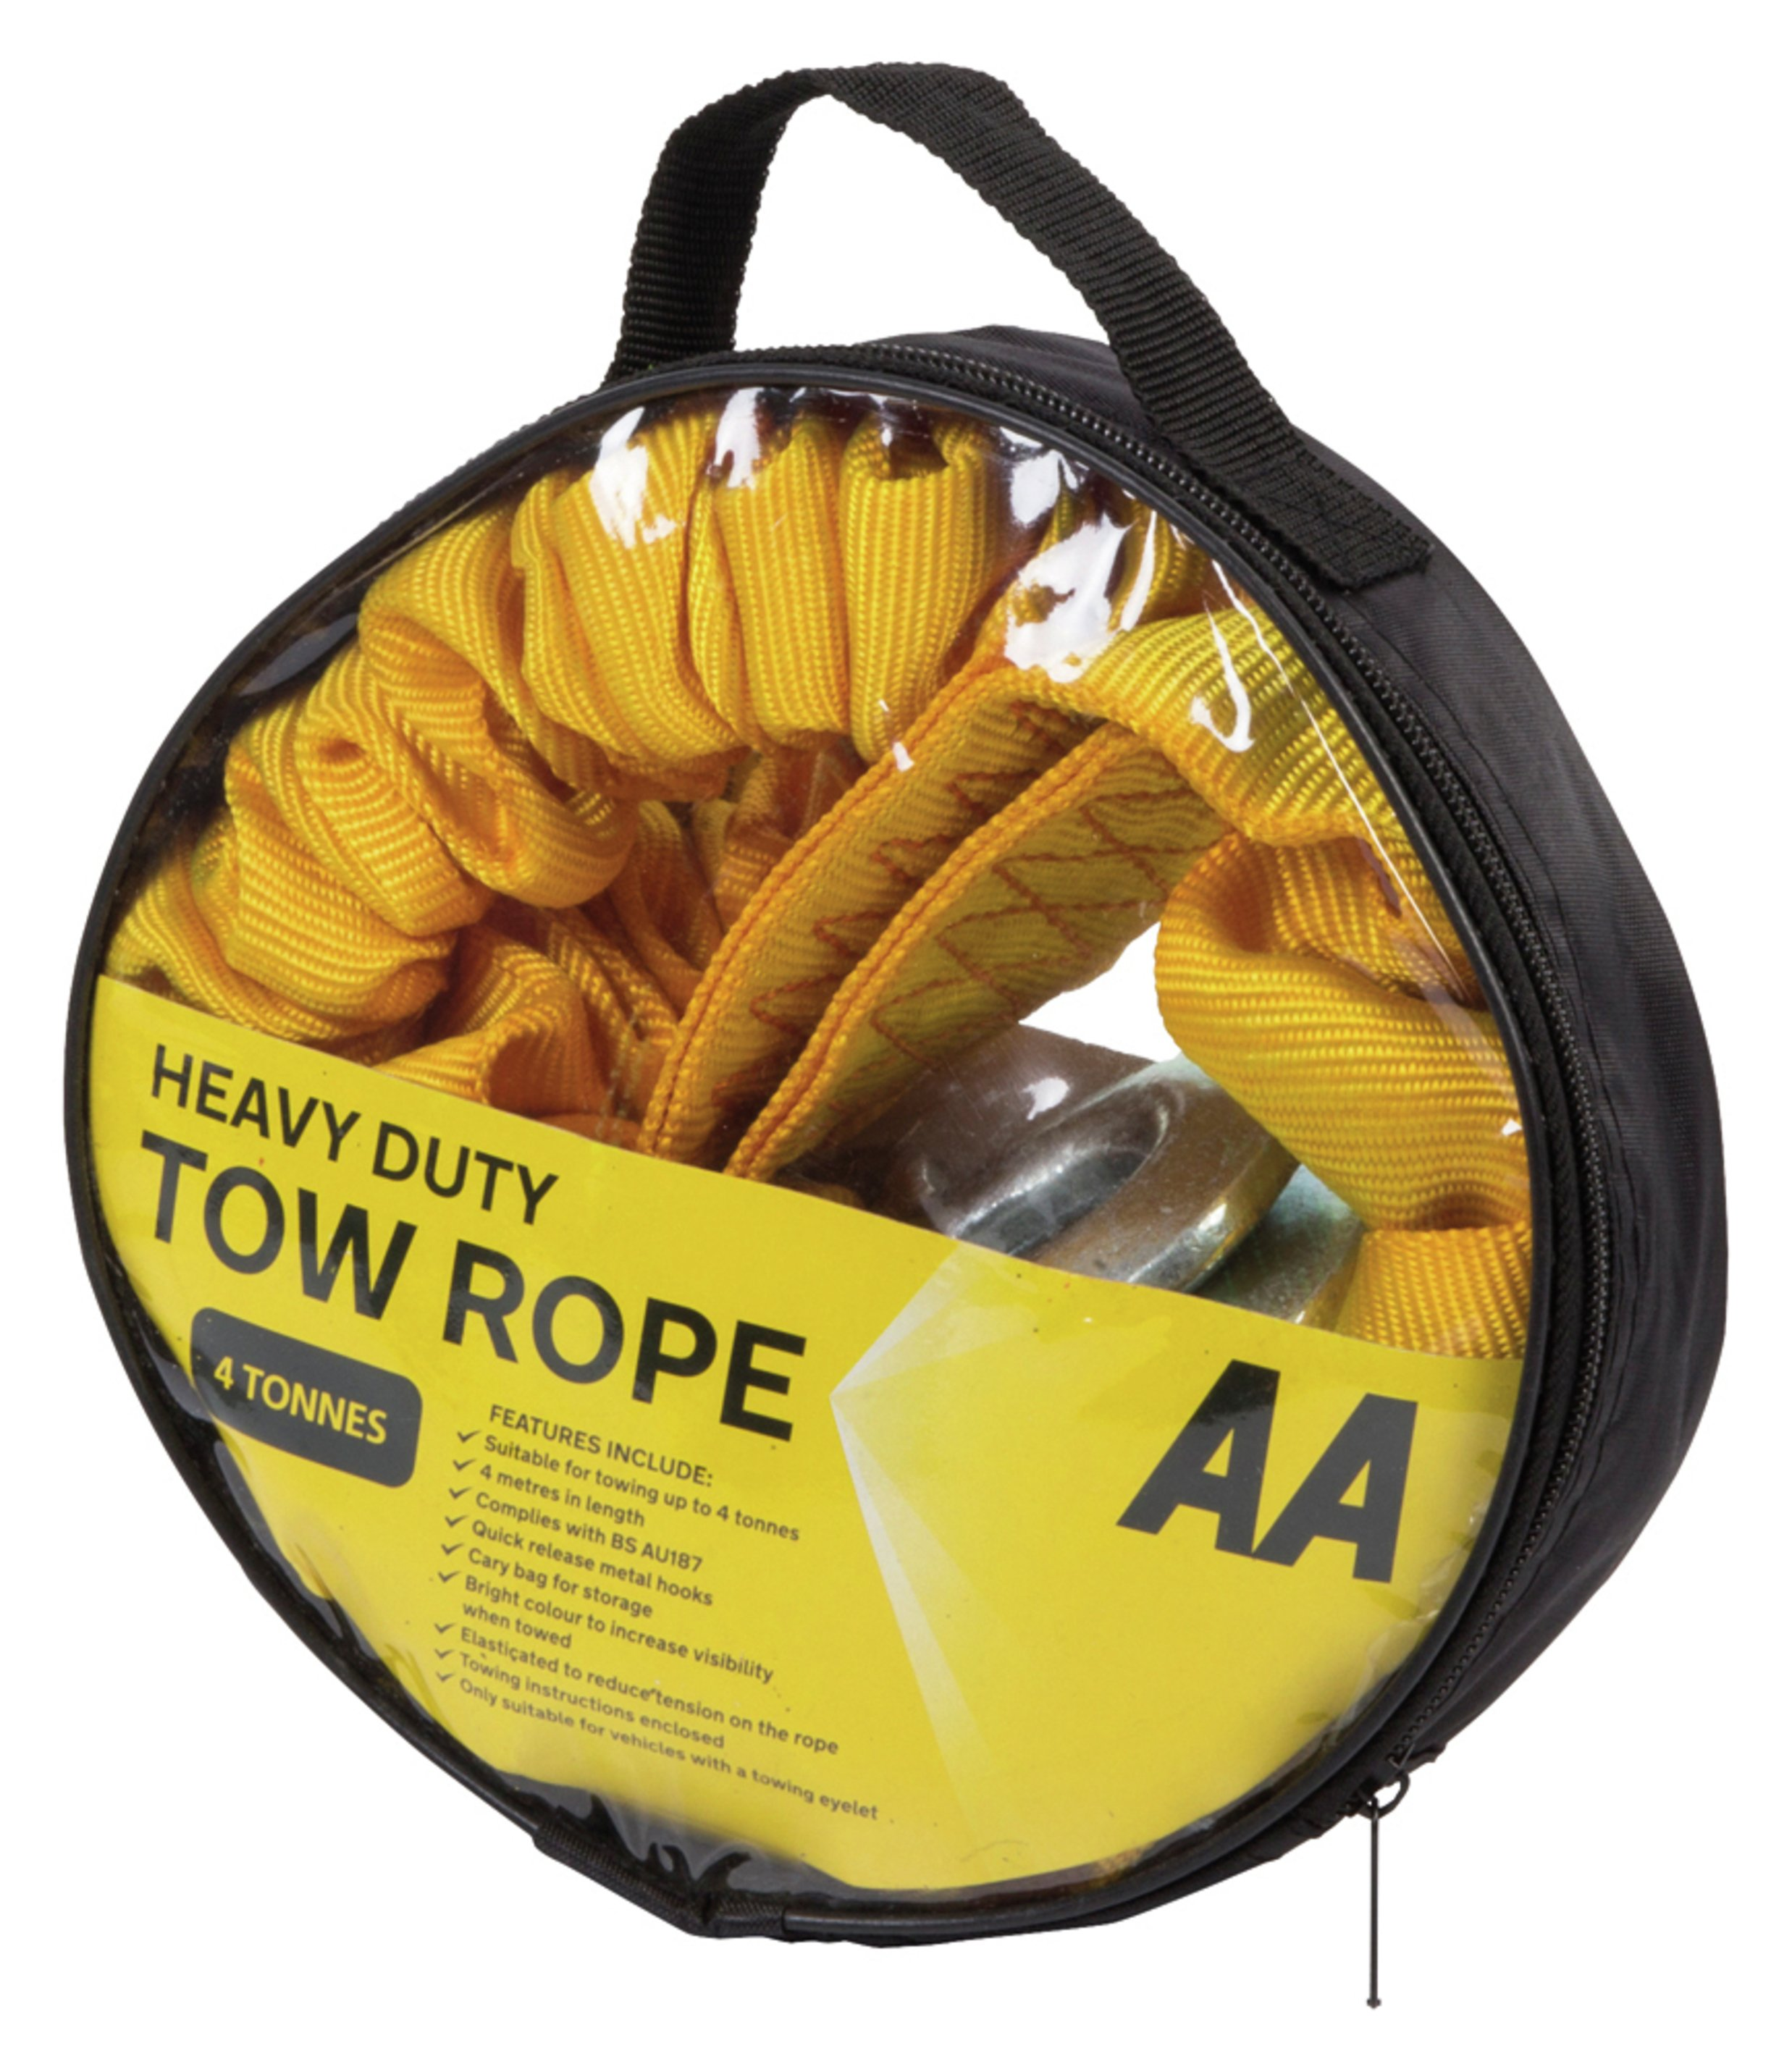 Image of AA 4 Metre Tow Rope with Carry Bag - 4 Tonnes